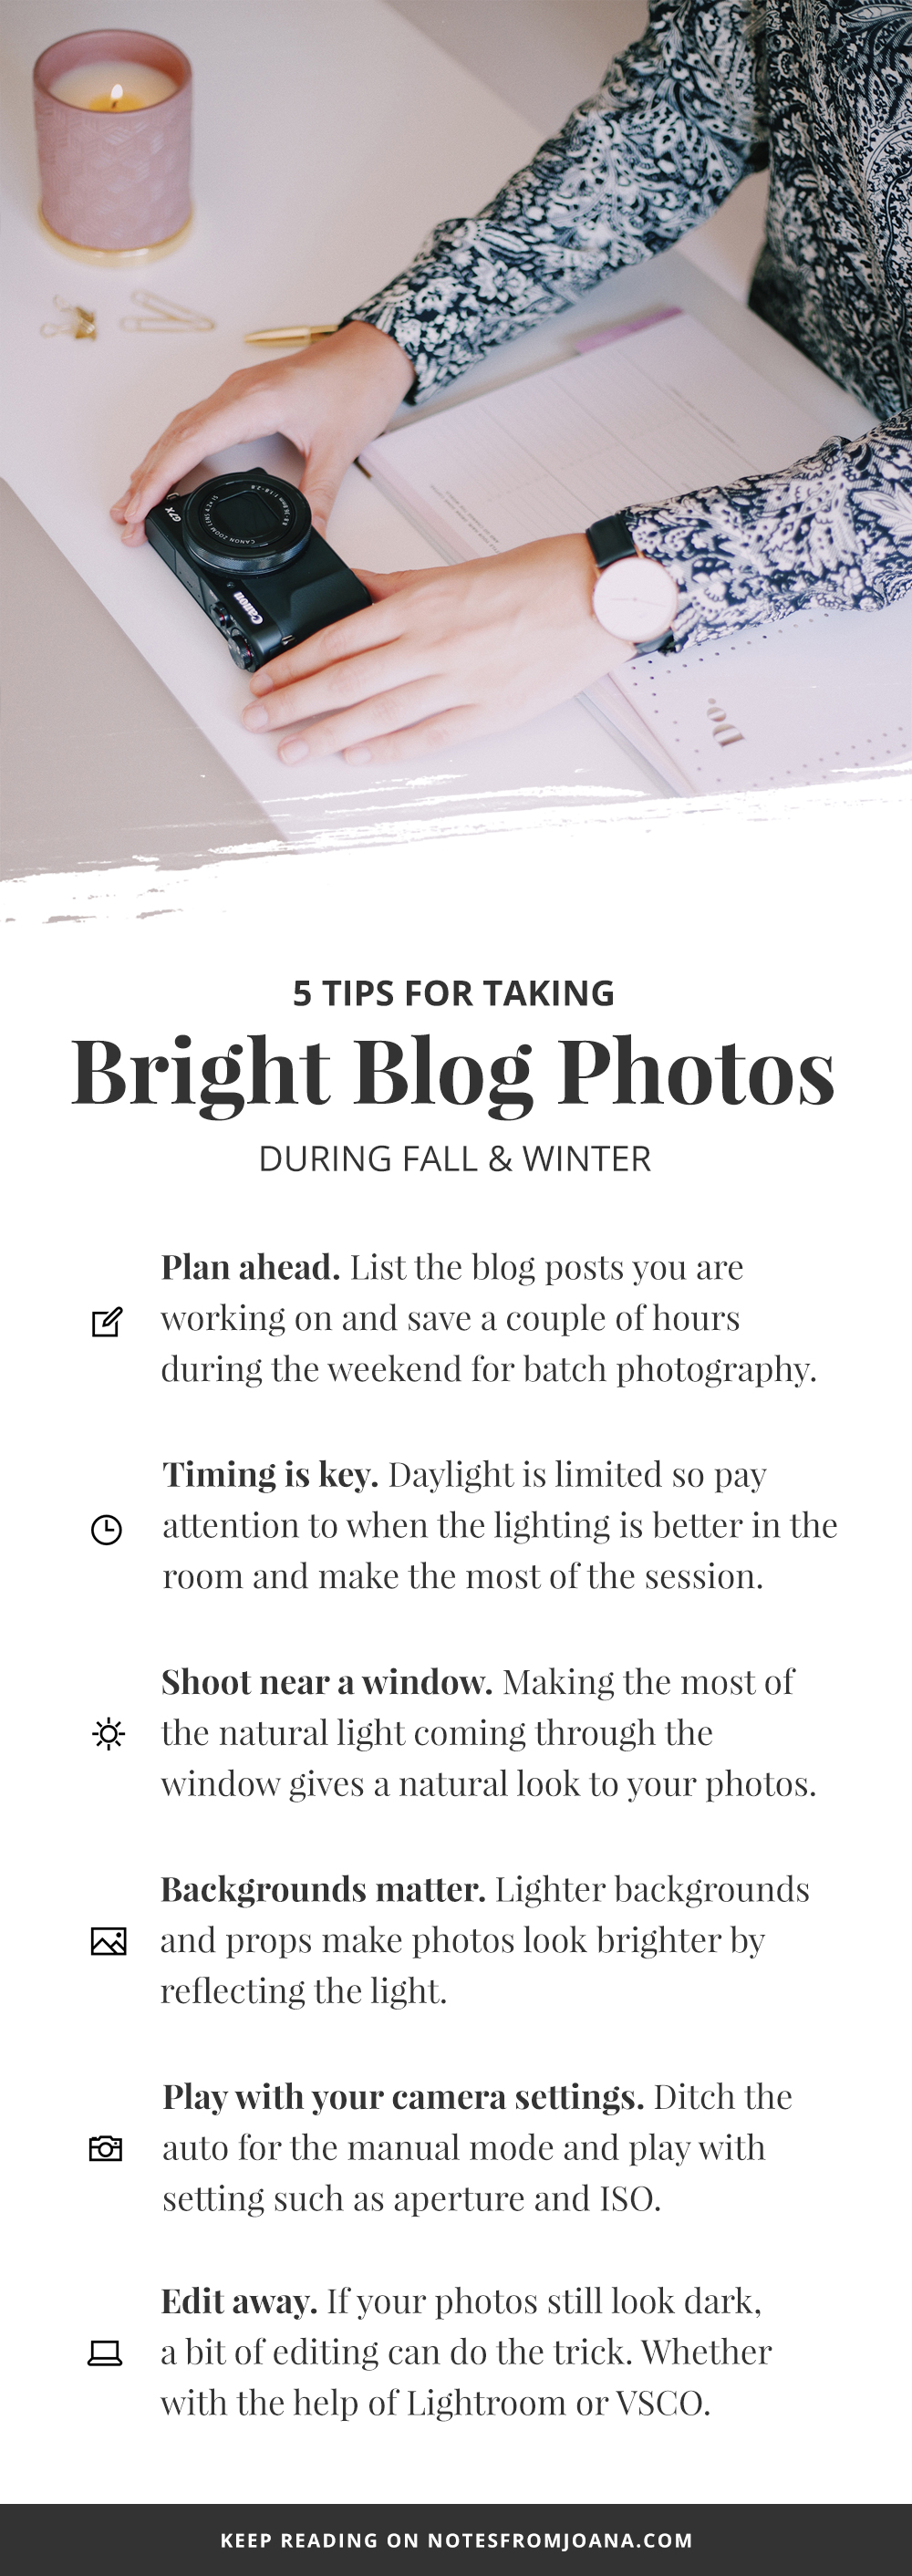 6 Tips For Taking Bright s In Fall & Winter